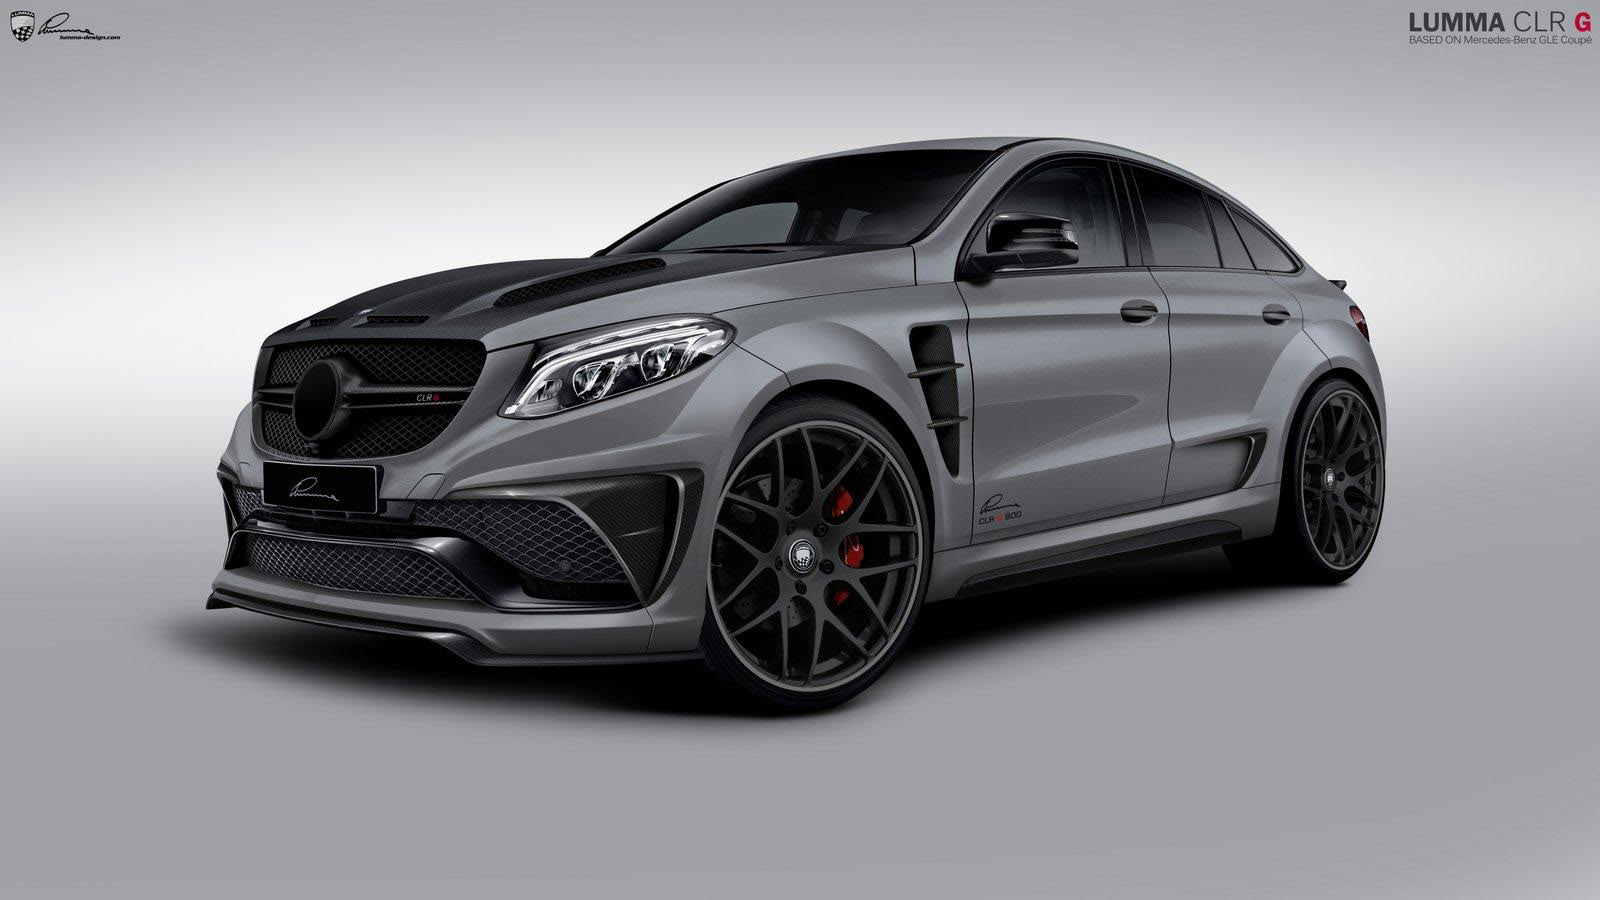 2015 lumma mercedes benz gle coupe clr g 800 picture 124288 for Mercedes benz account